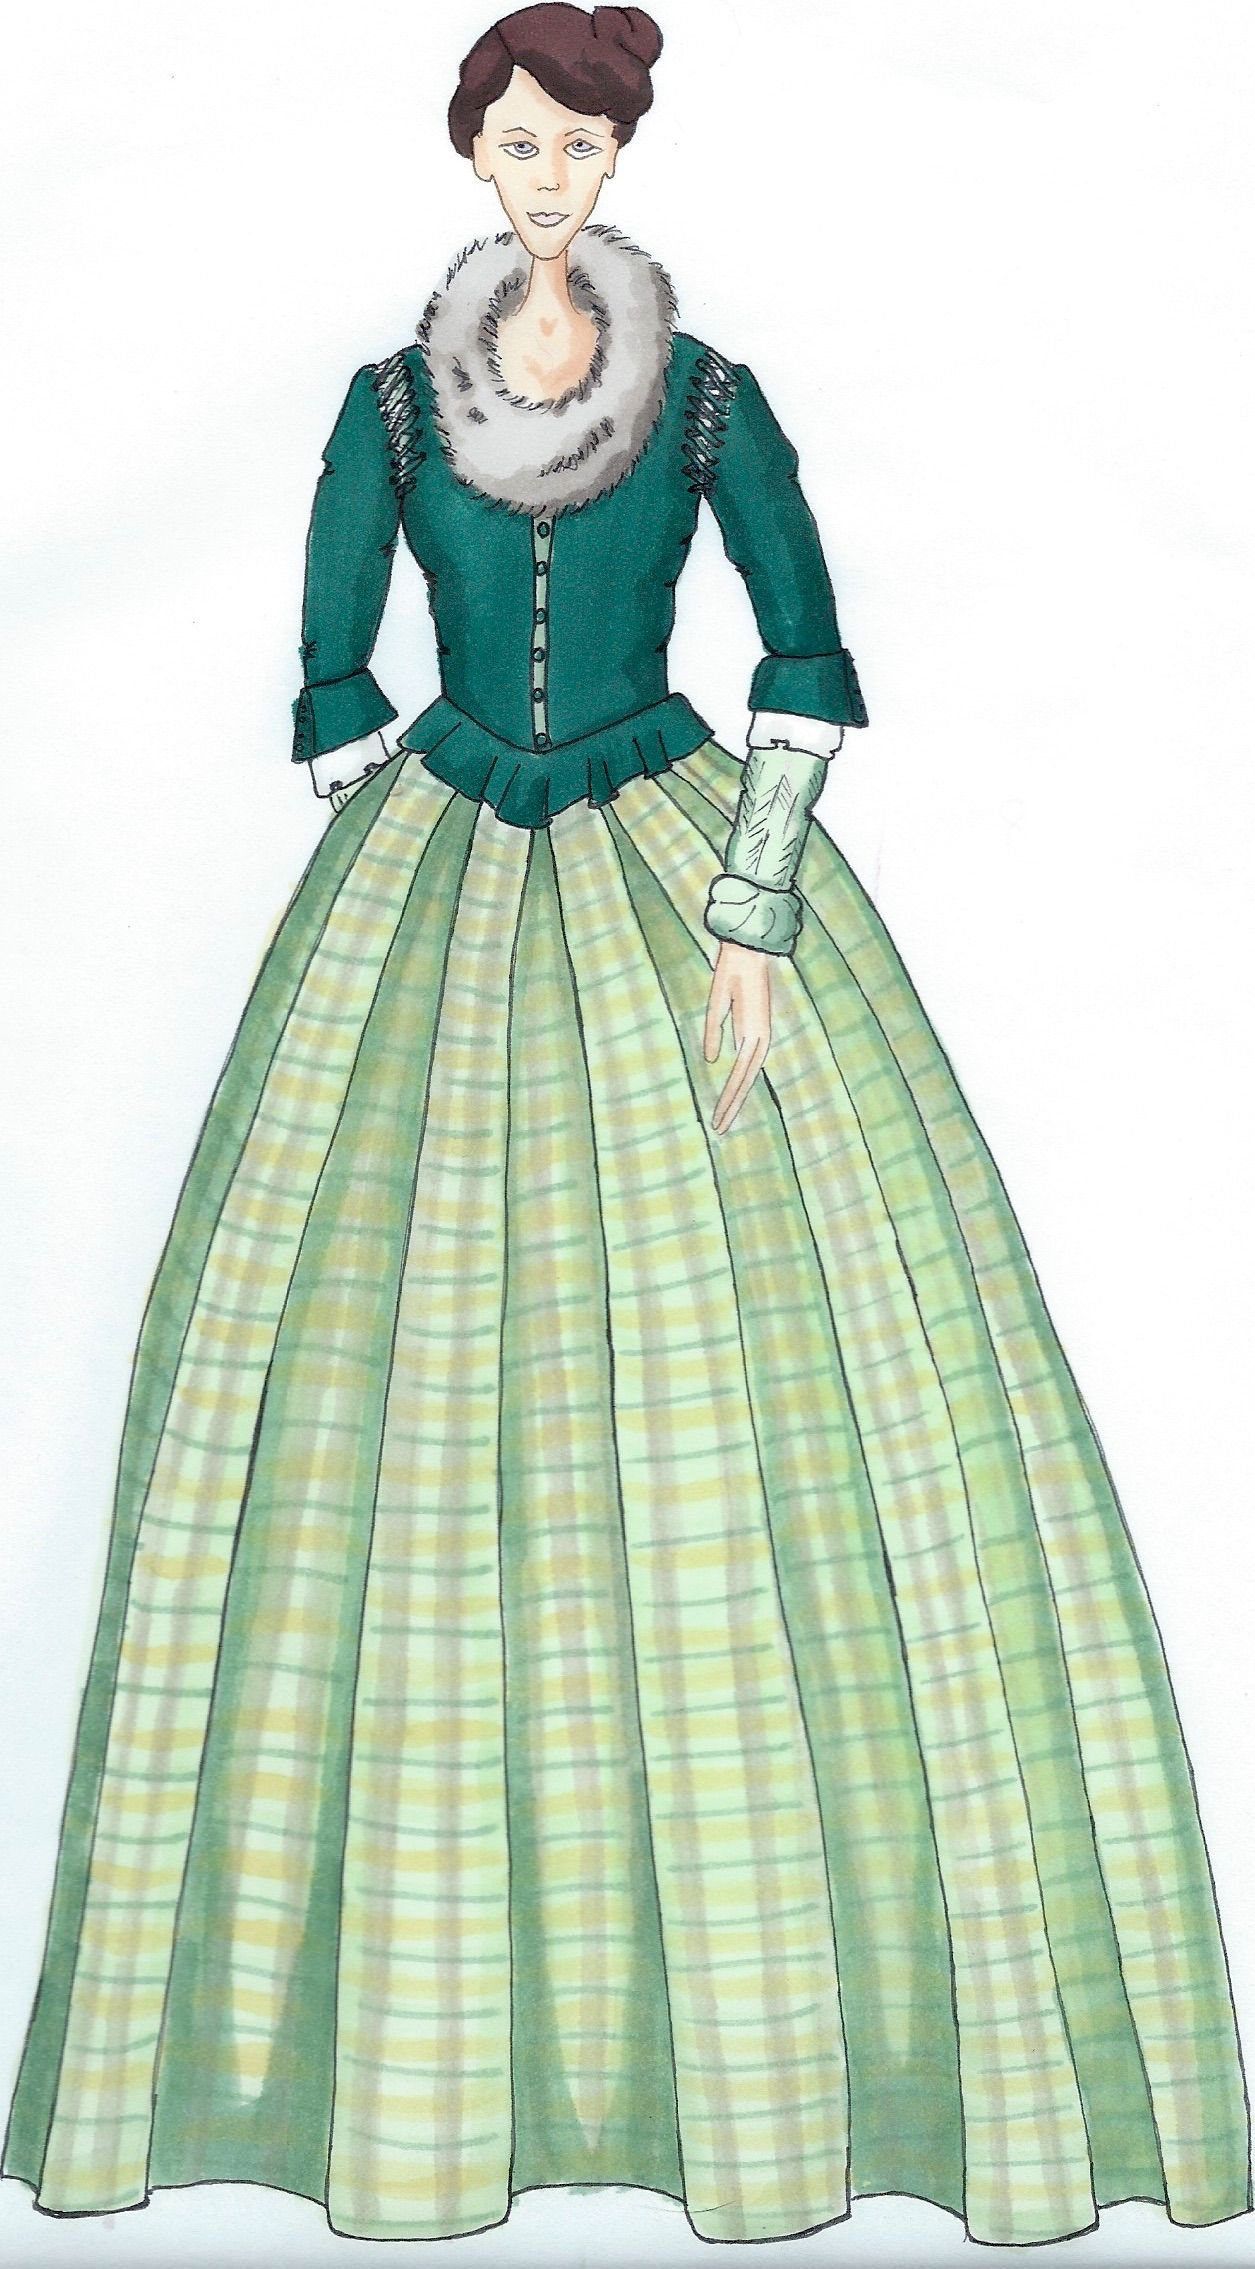 illustration of claire from outlander